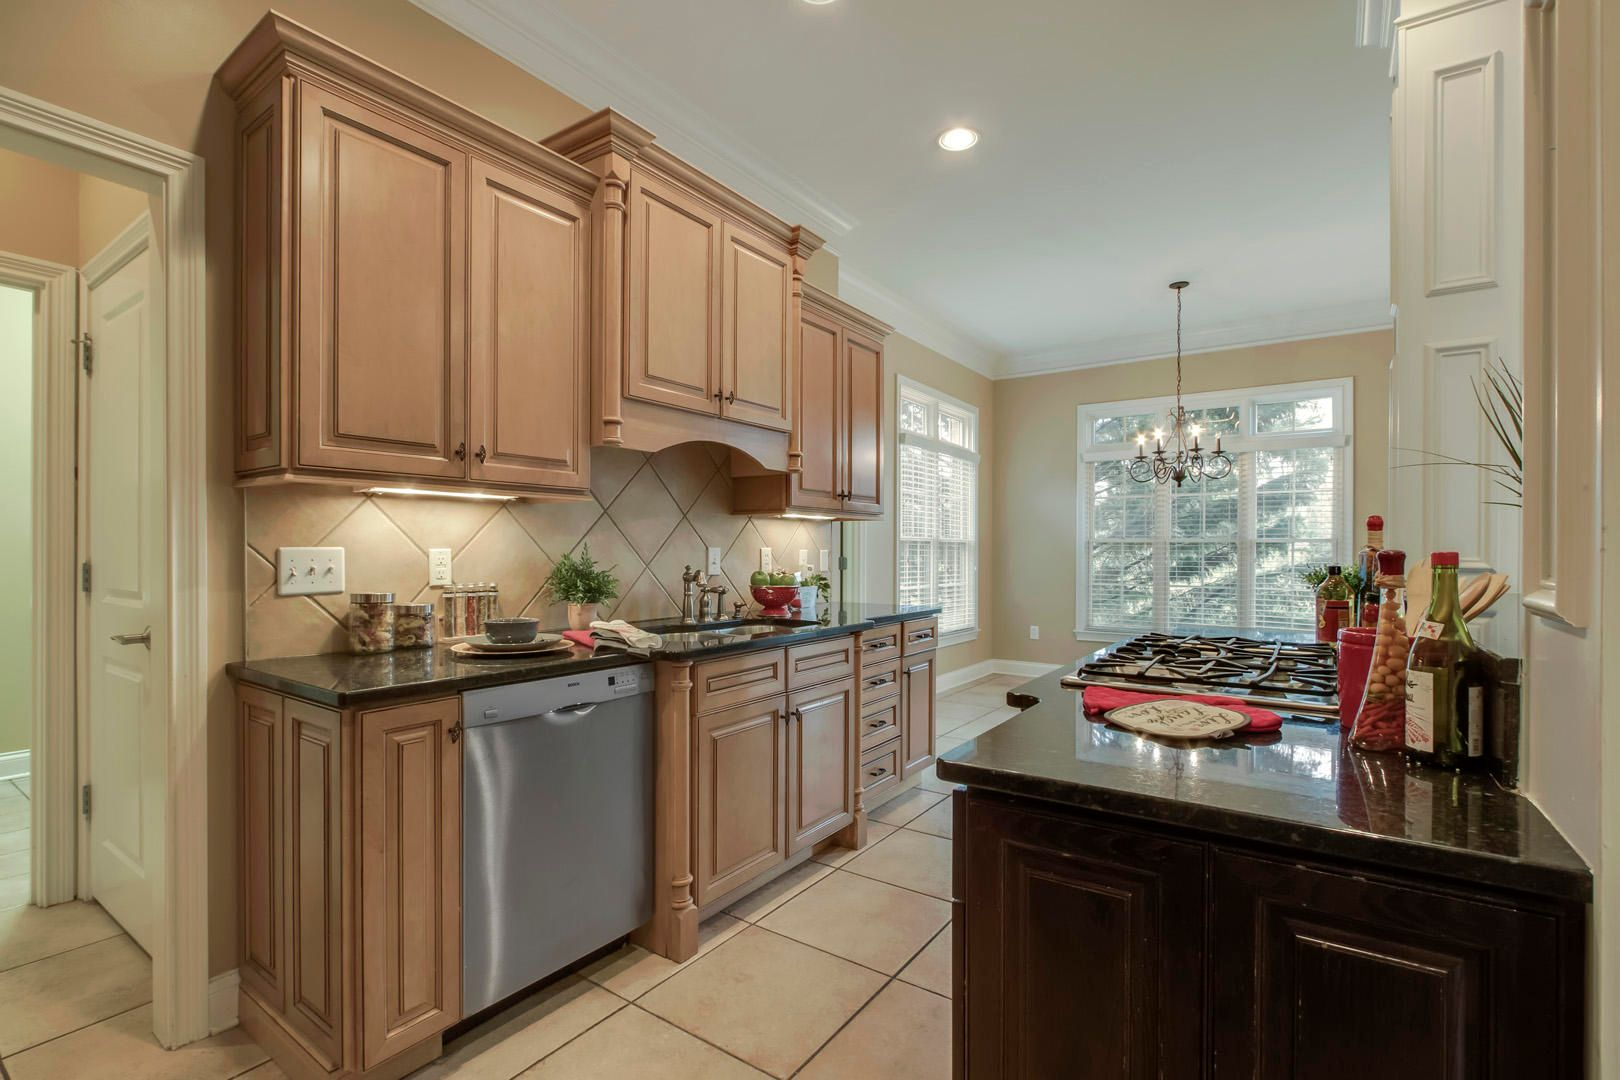 22_RedgraveRoad_1746_Kitchen05